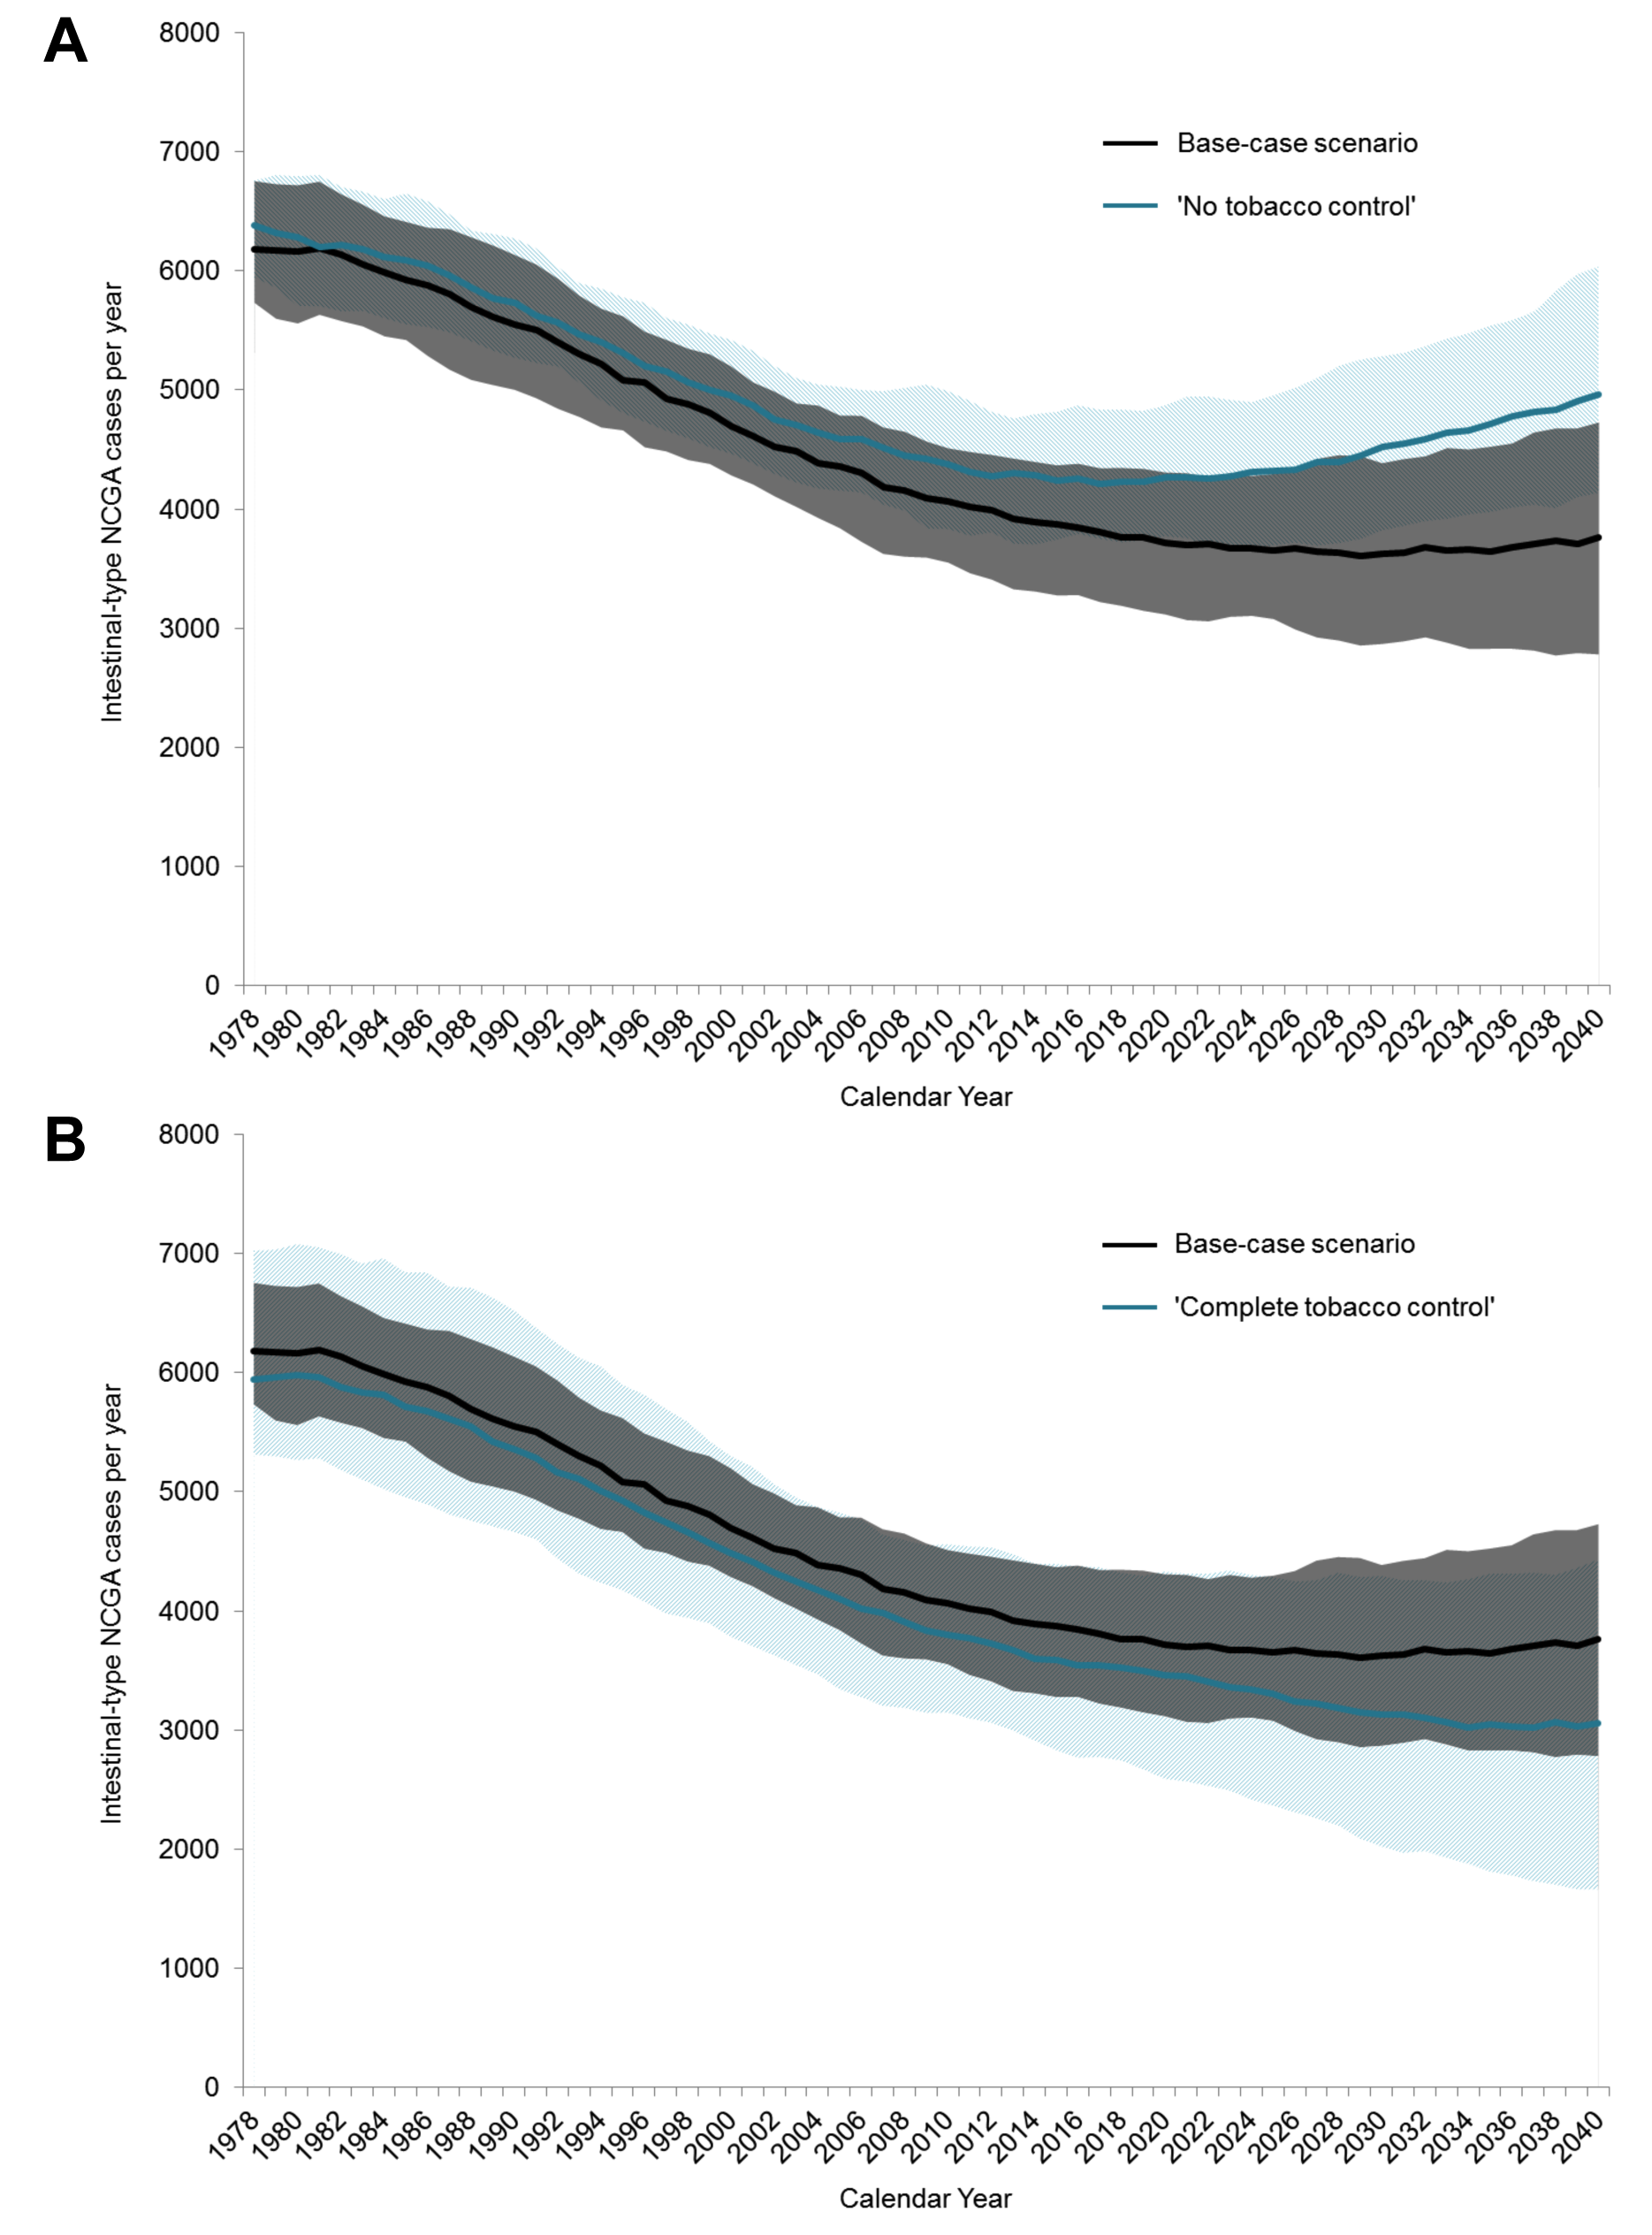 Modeled annual intestinal-type NCGA cases between 1978 and 2040 for select scenarios.